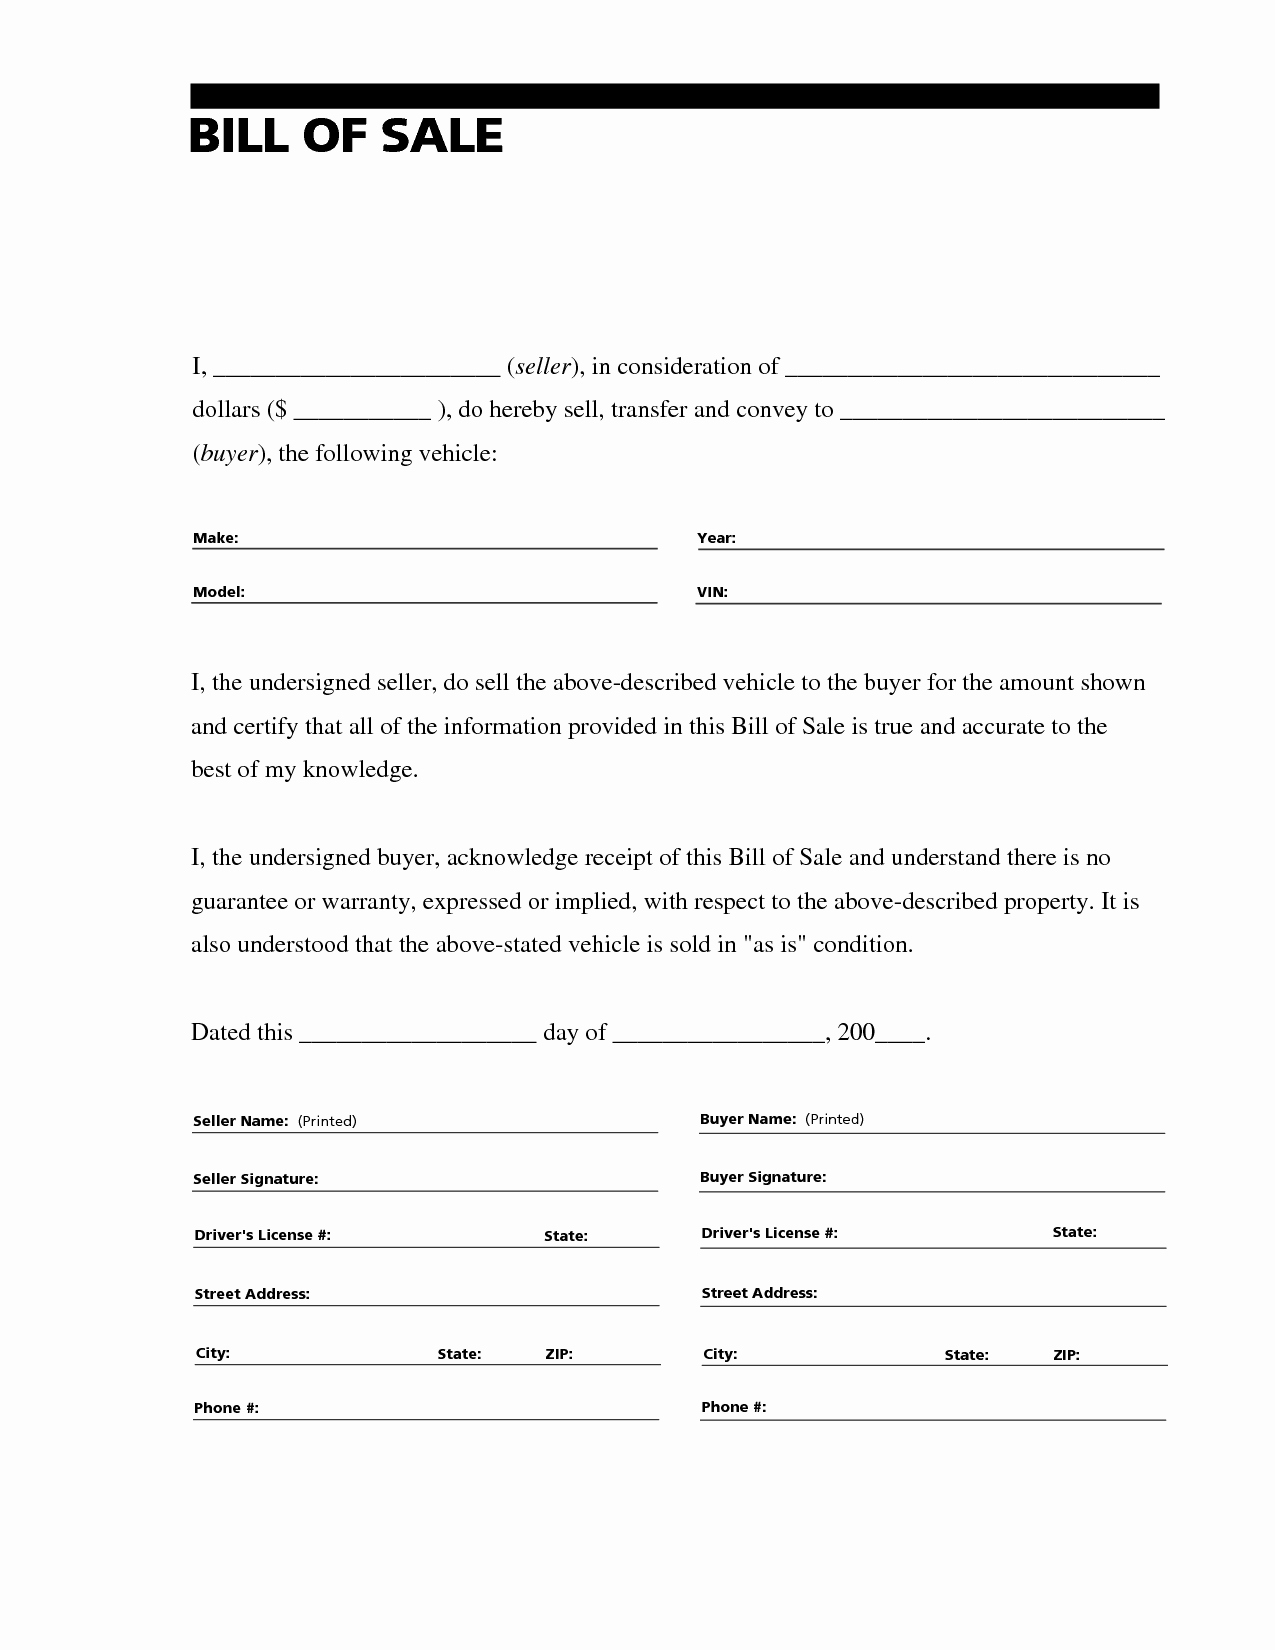 Bill Of Sale Automobile Template New Free Printable Vehicle Bill Of Sale Template form Generic